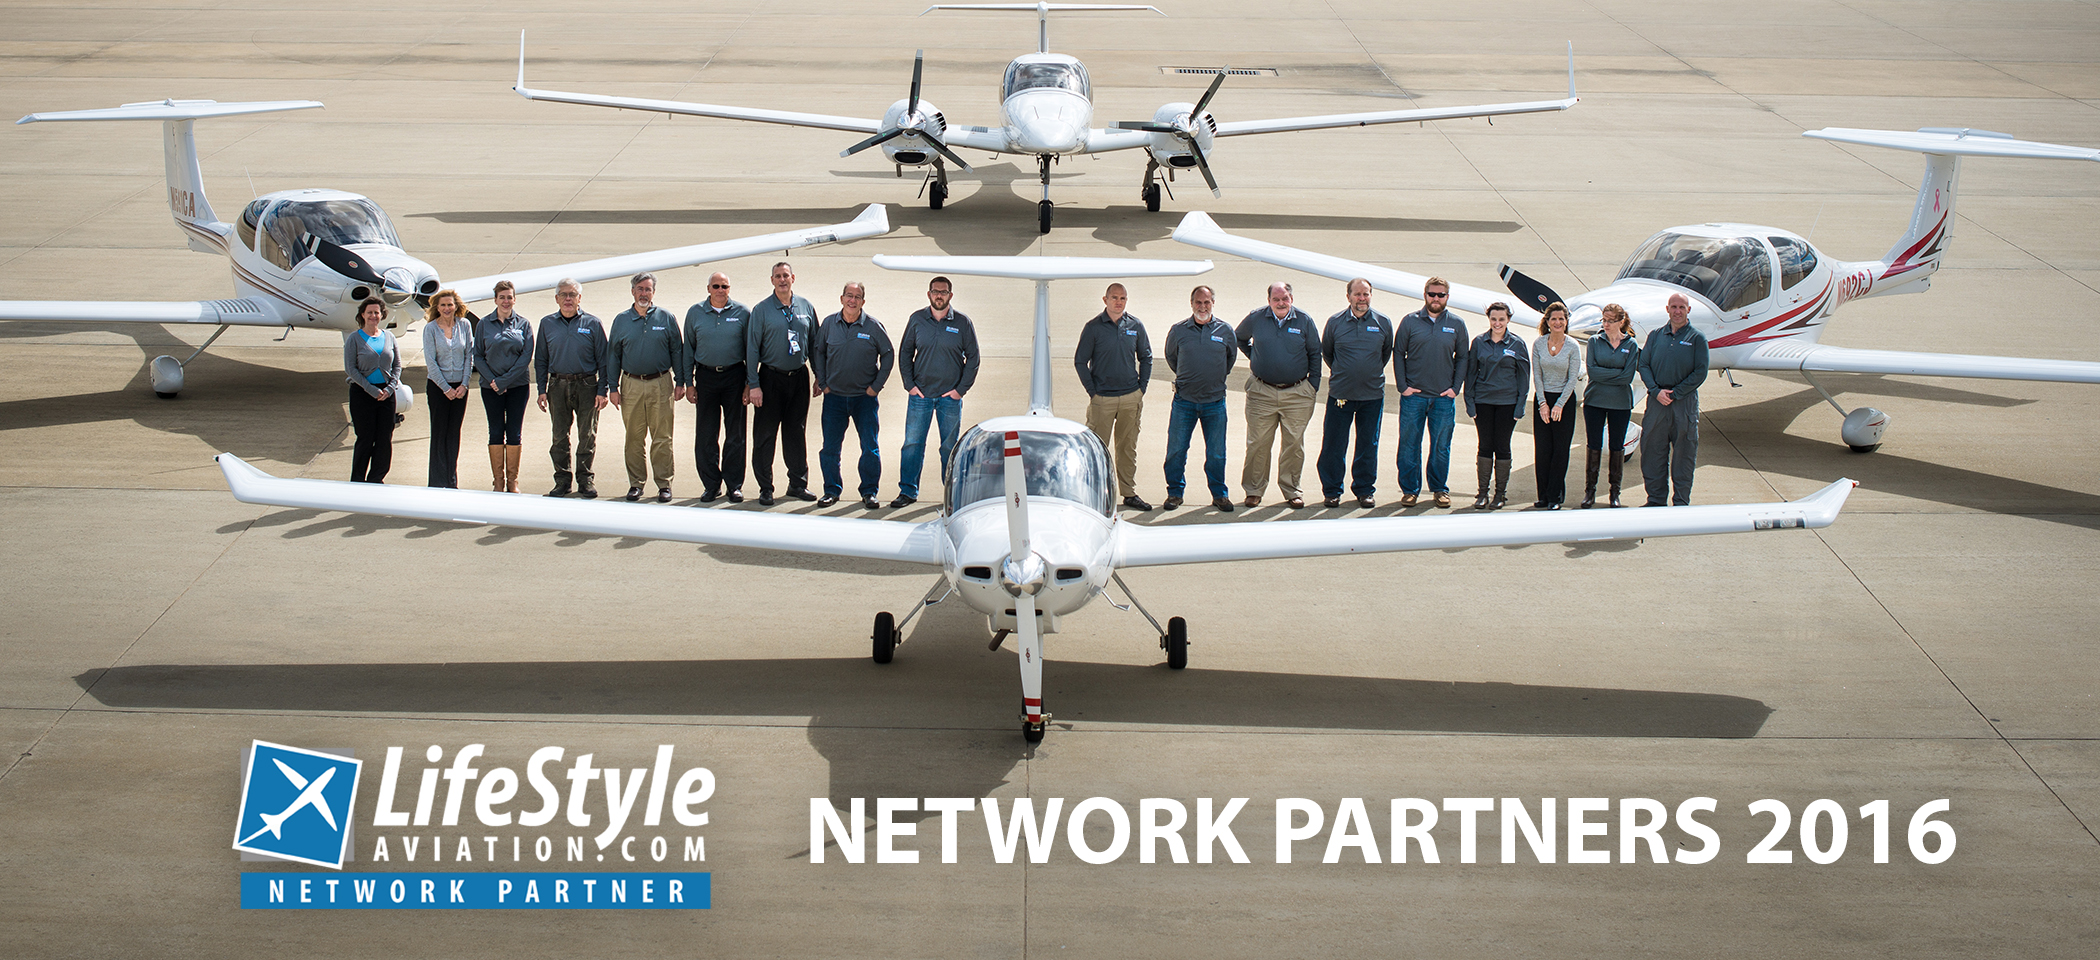 LifeStyle Aviation Network Council Event 2016